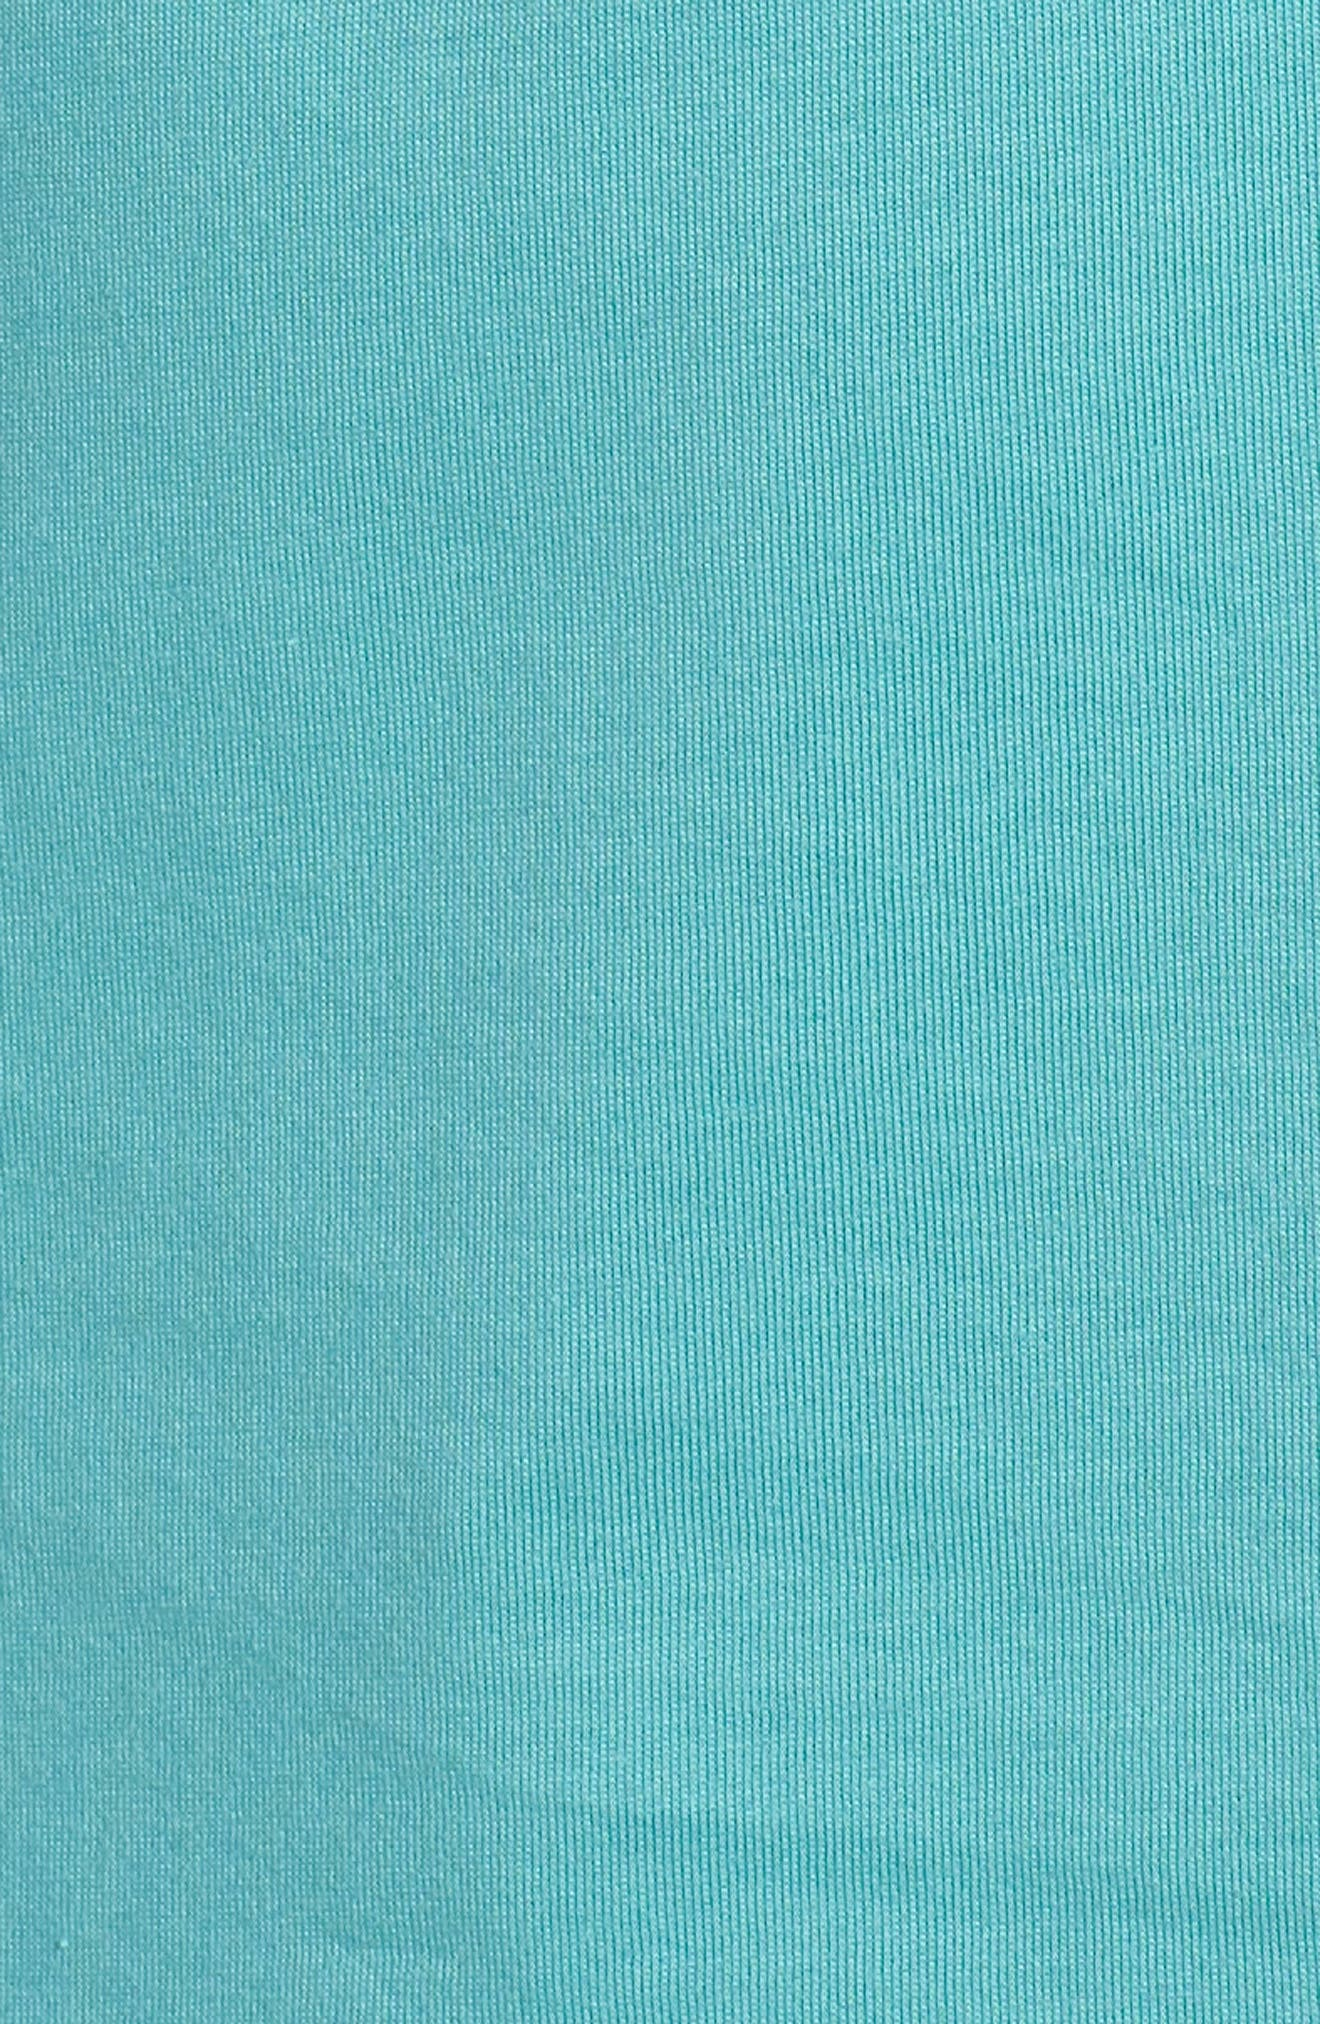 T-Diego-SM T-Shirt,                             Alternate thumbnail 5, color,                             Slate/ Blue